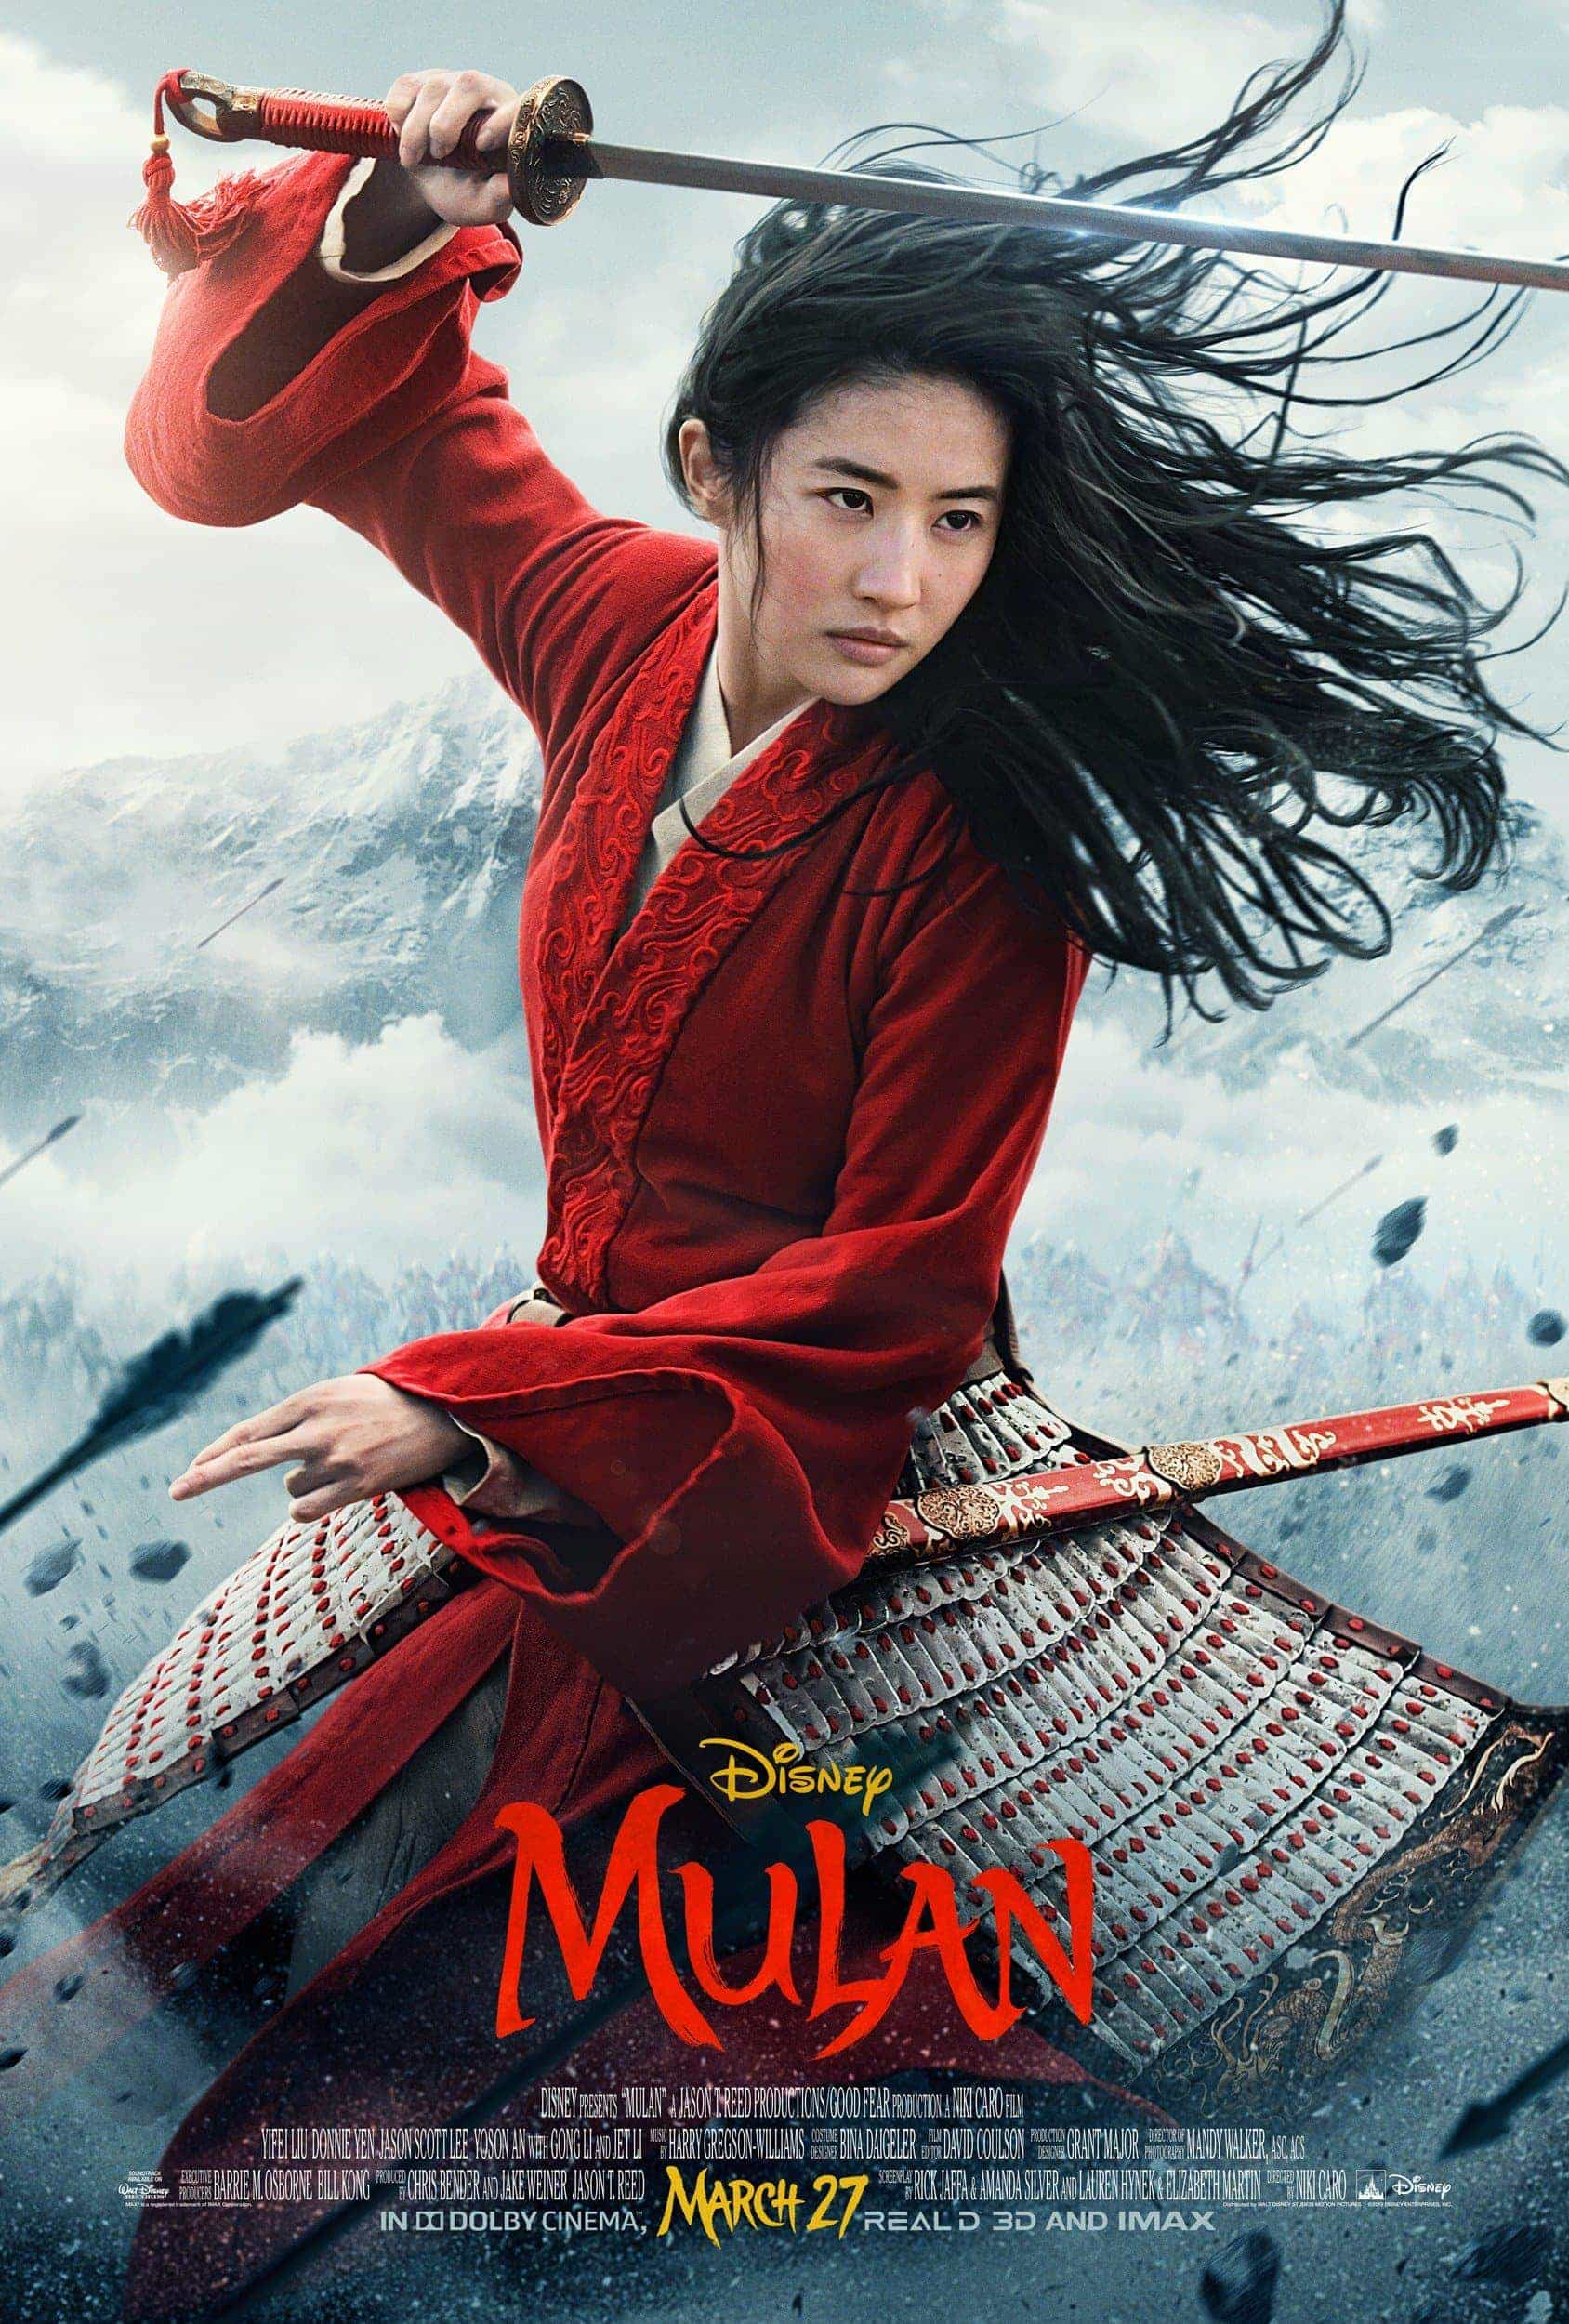 Disney announce Mulan live action will be released on Disney+ in America